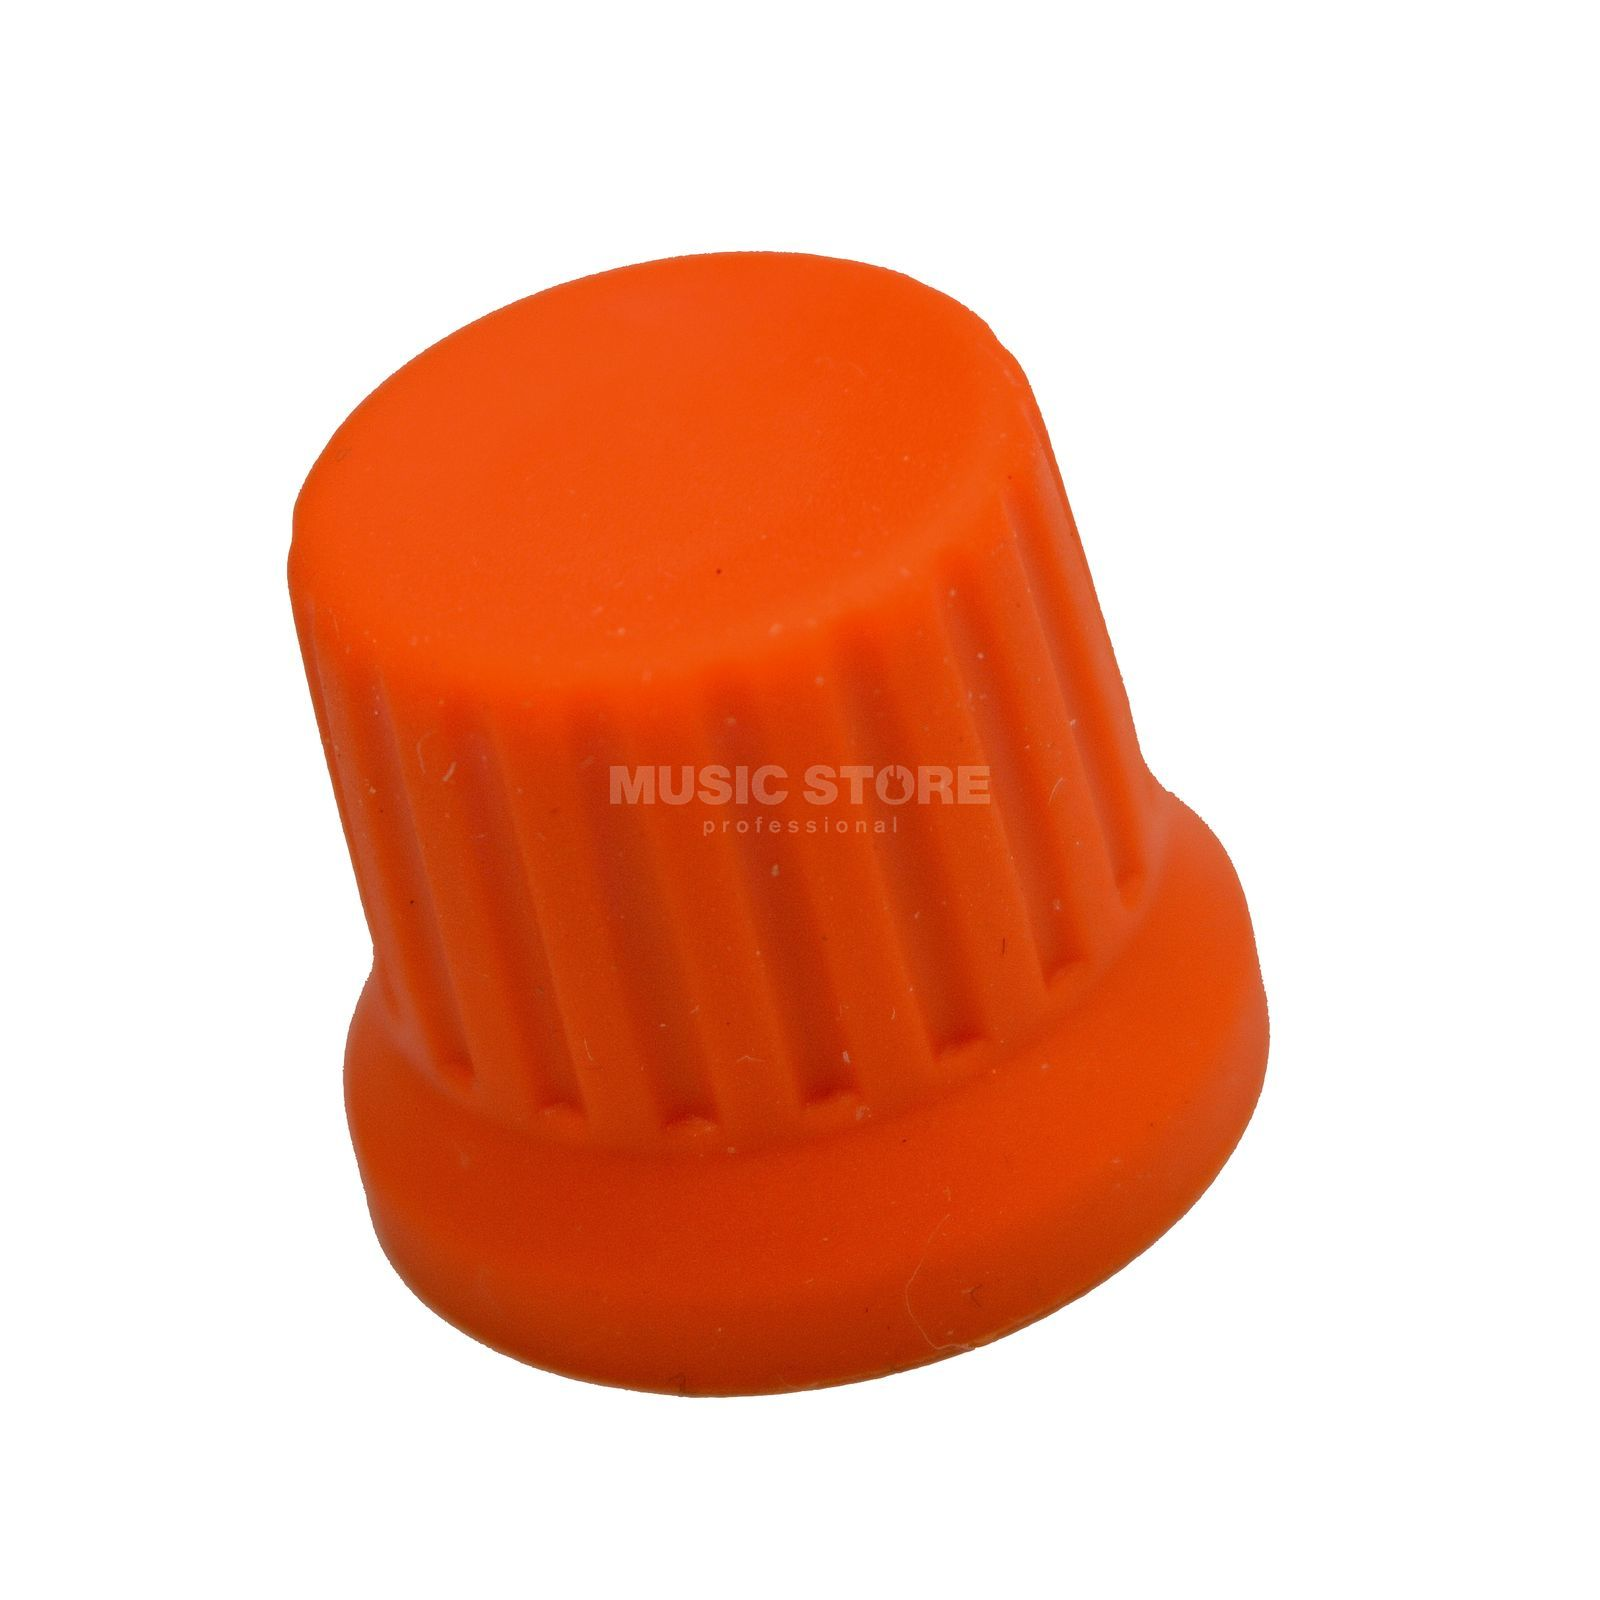 DJ TECHTOOLS Chroma Caps Encor Knob orange Produktbillede